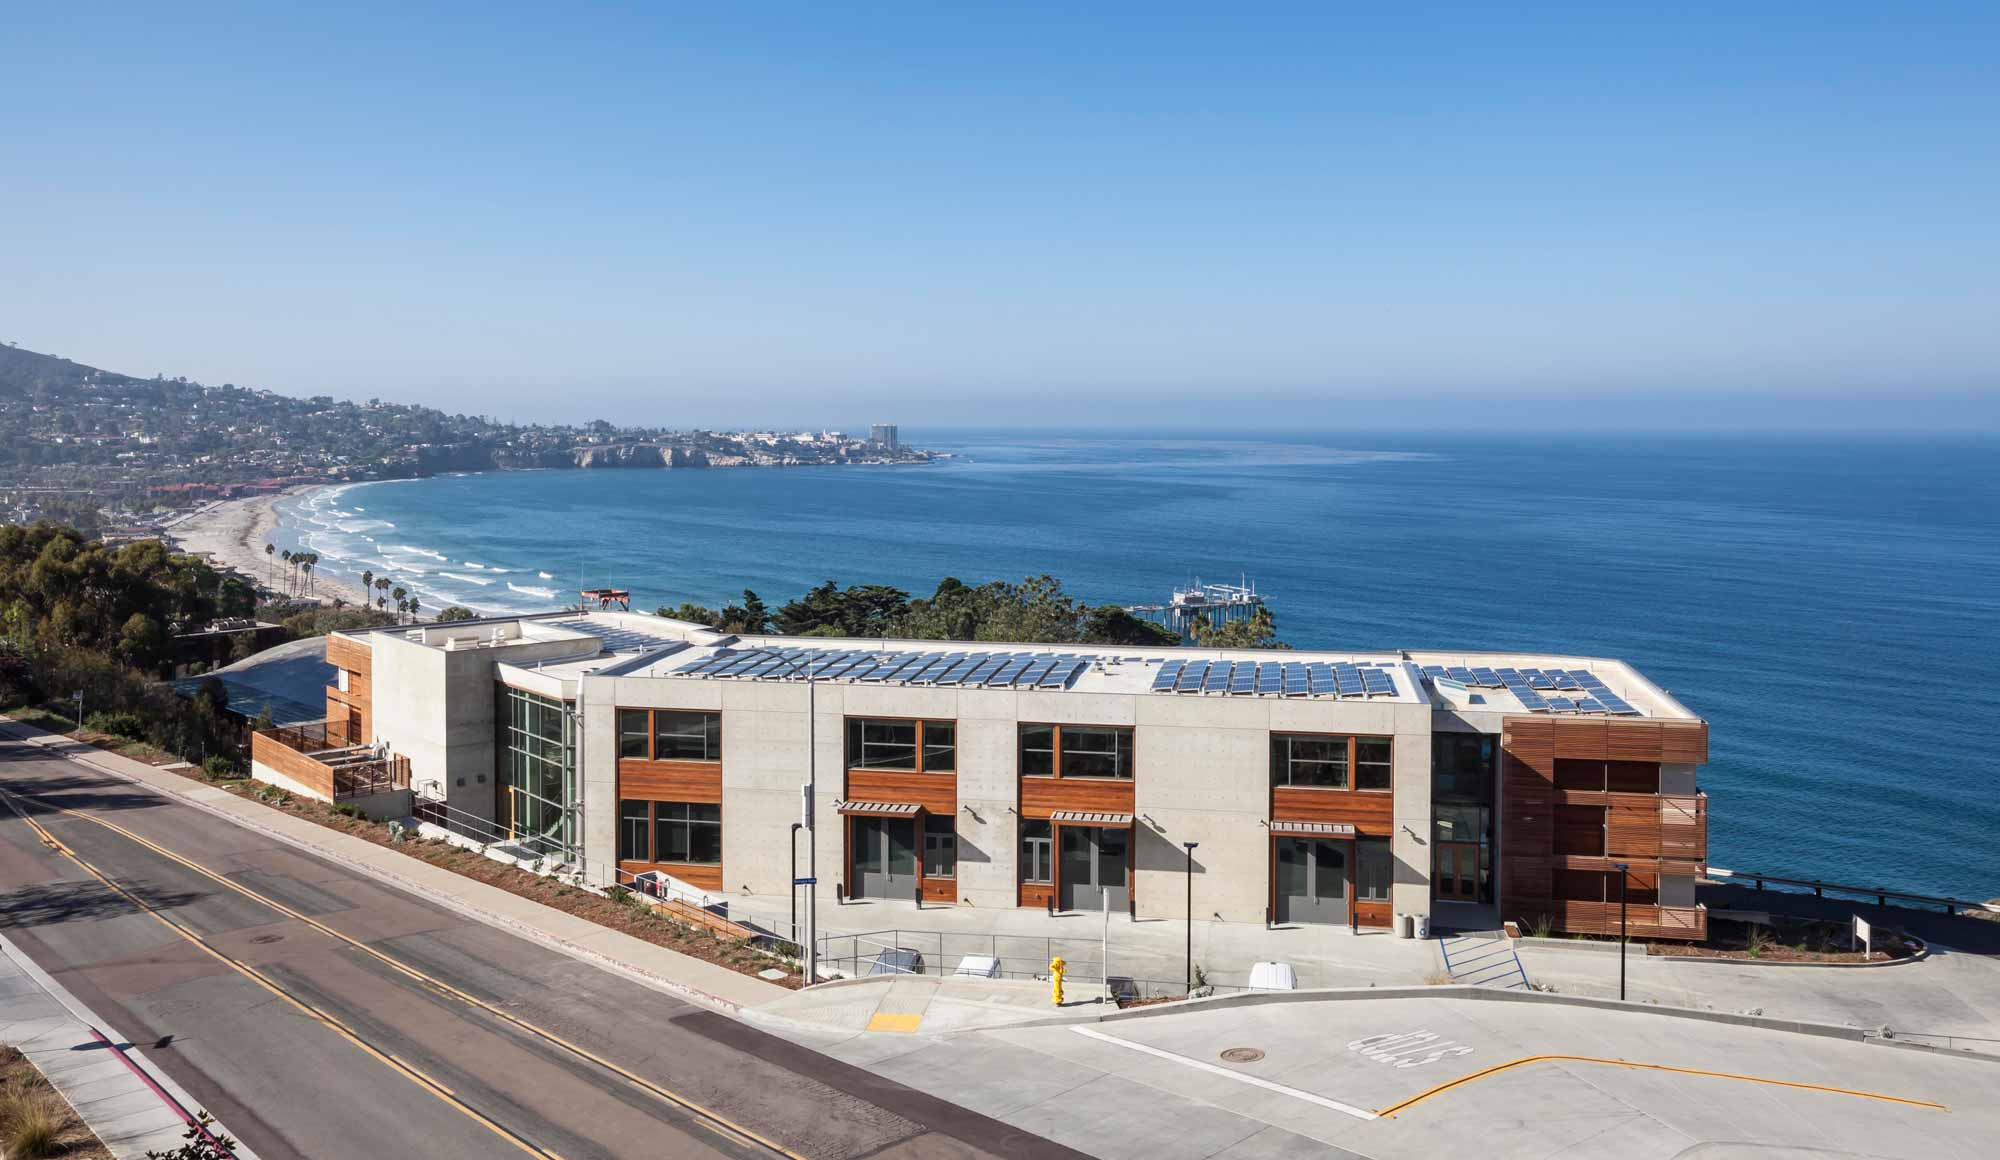 Scripps Institution of Oceanography, MESOM Research Laboratory Facility